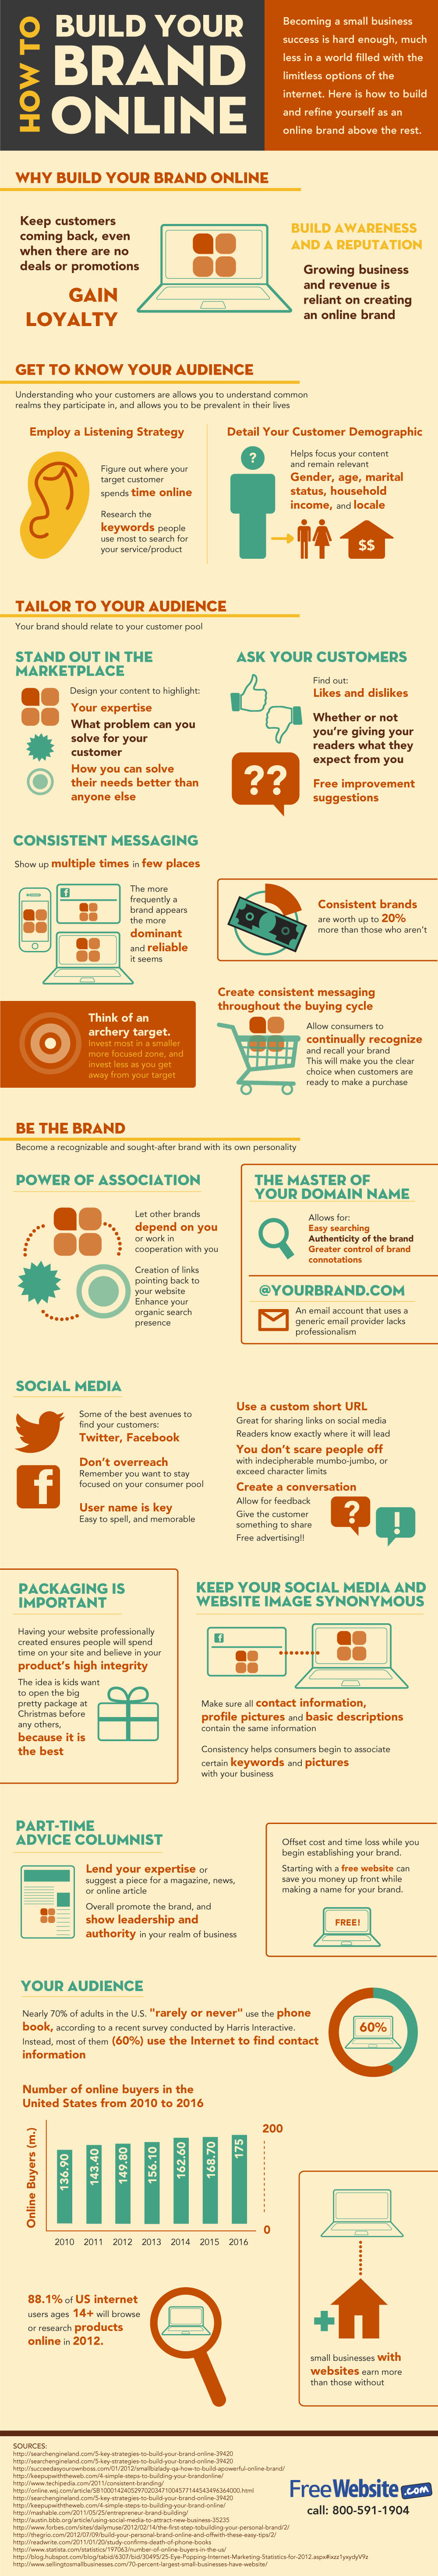 9 Powerful Ways To Build Your Brand Online Presence [infographic]